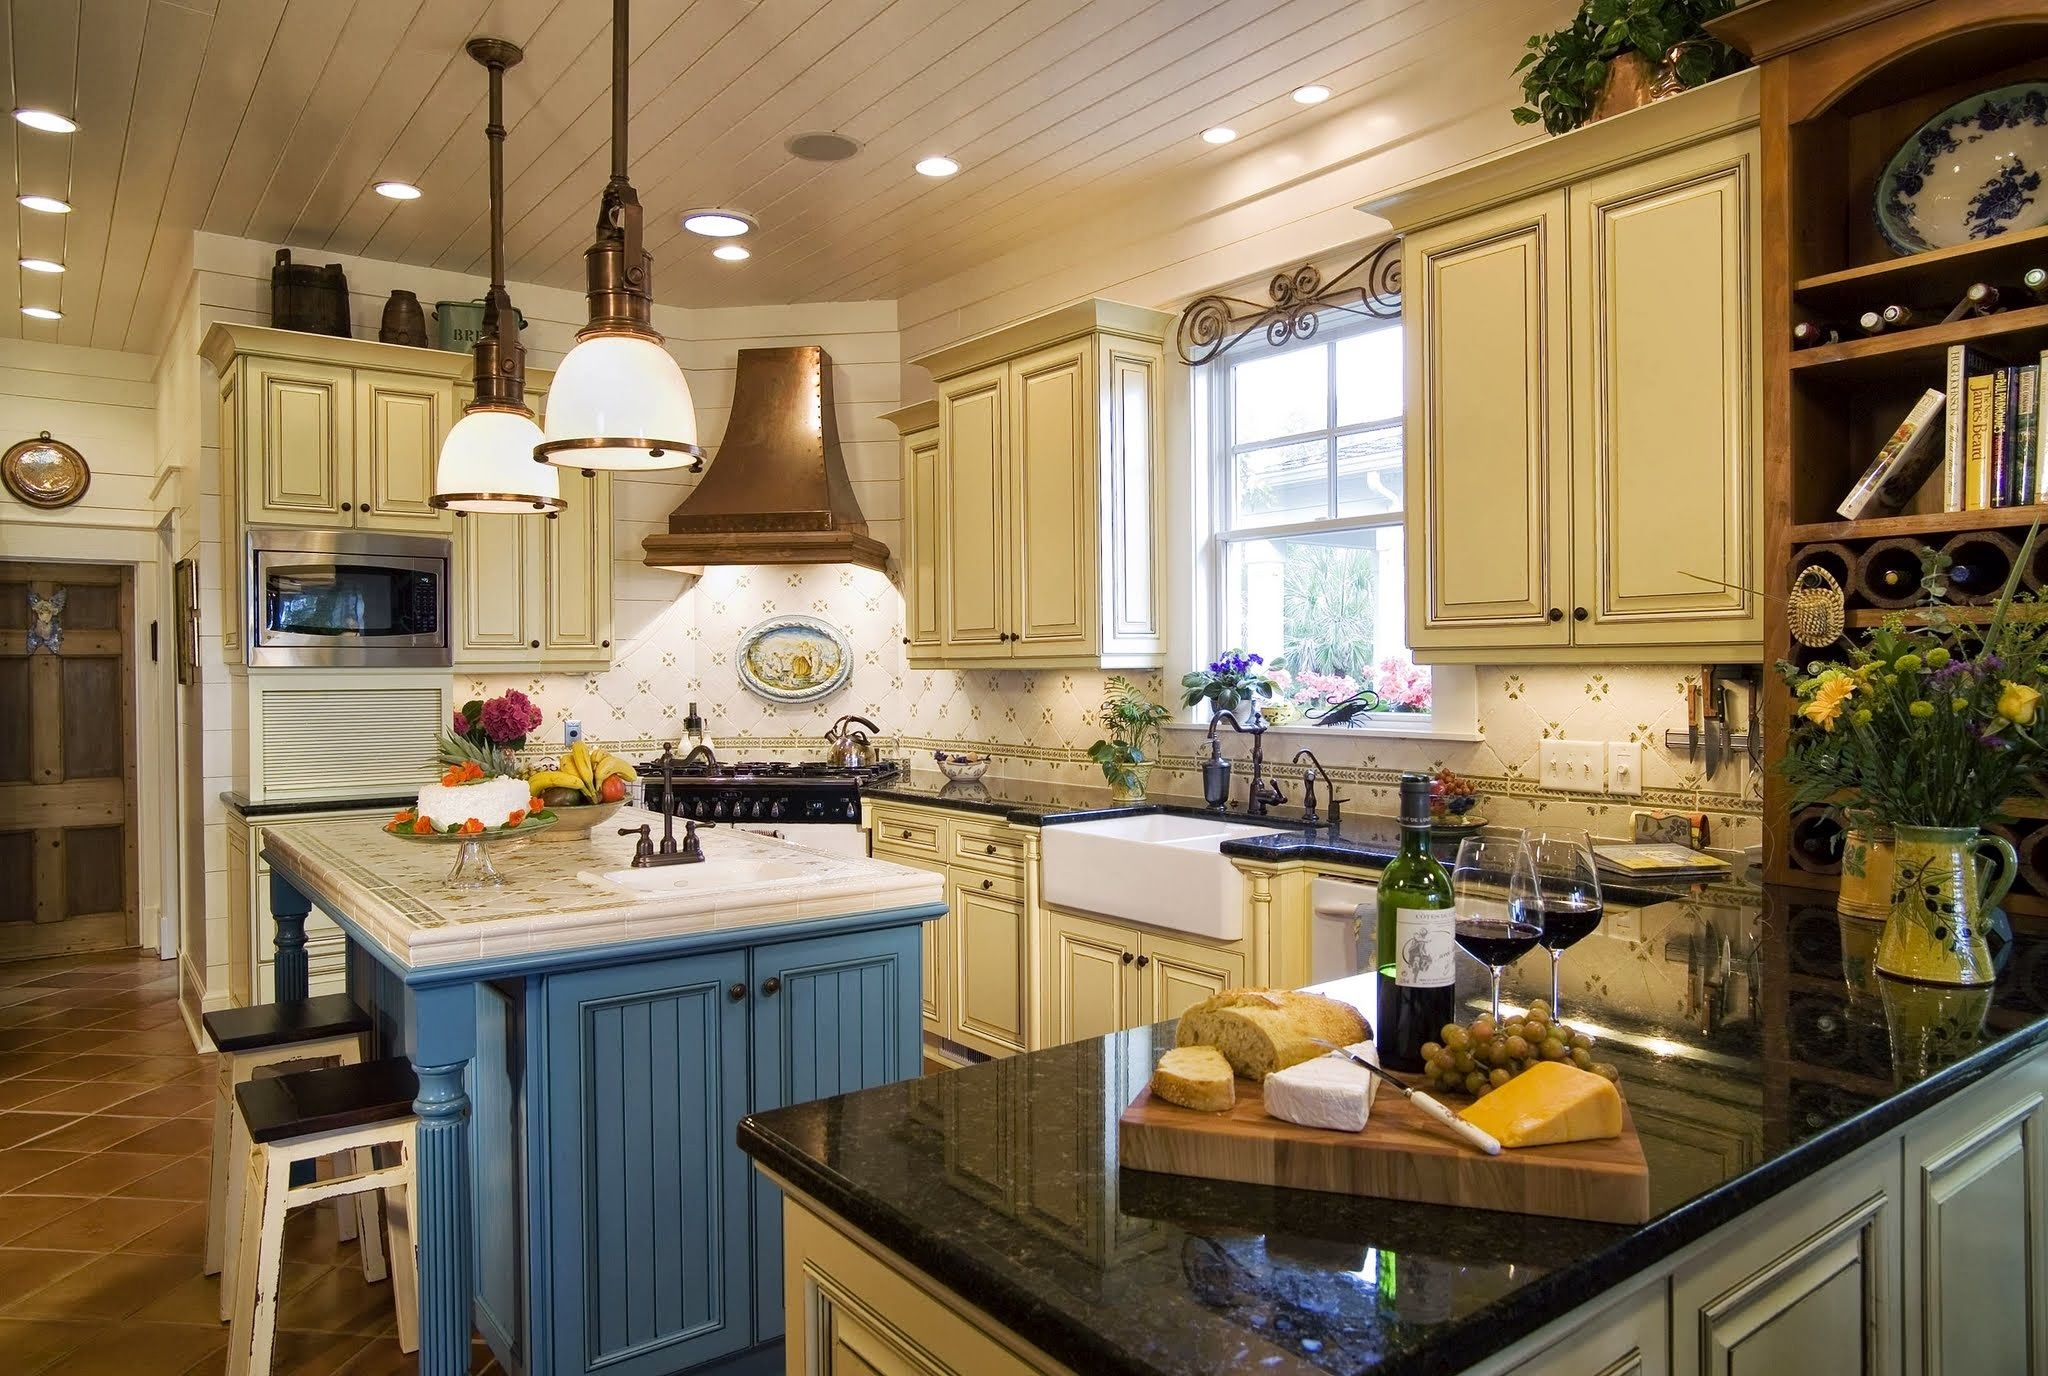 french country kitchen blue and yellow inspiration decorating 45973 kitchen country kitchen on kitchen ideas colorful id=38573